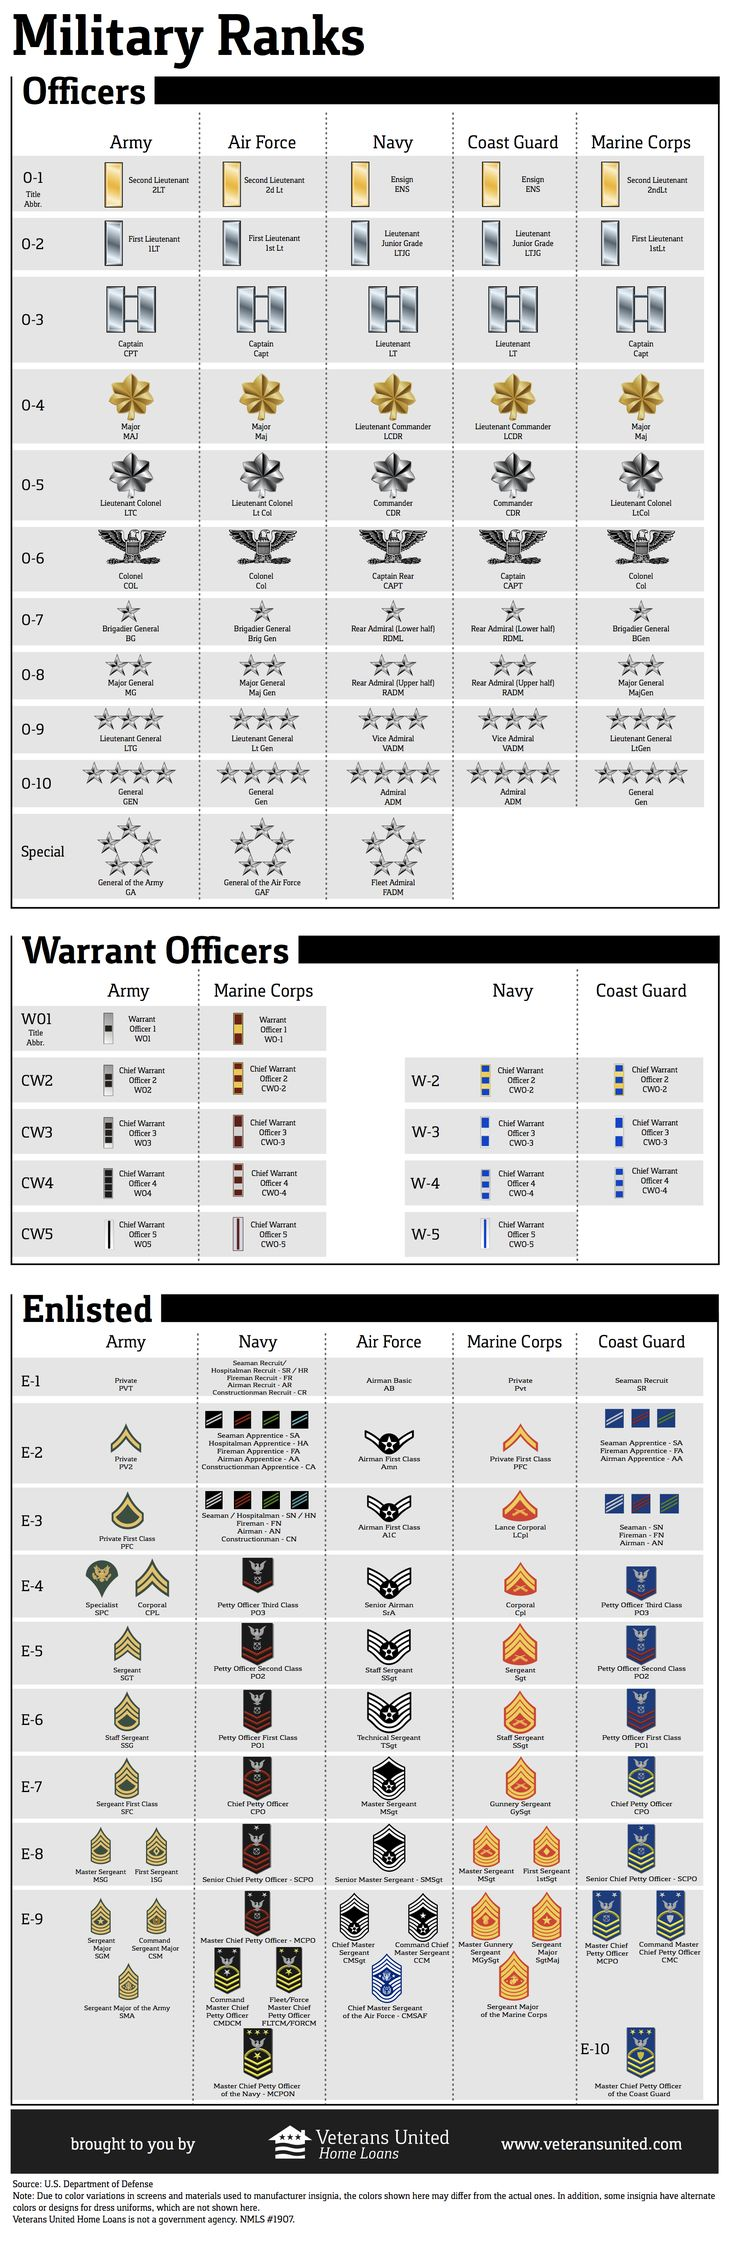 ARMY Ranks with insignia for all five branches. More military infographics on this site.